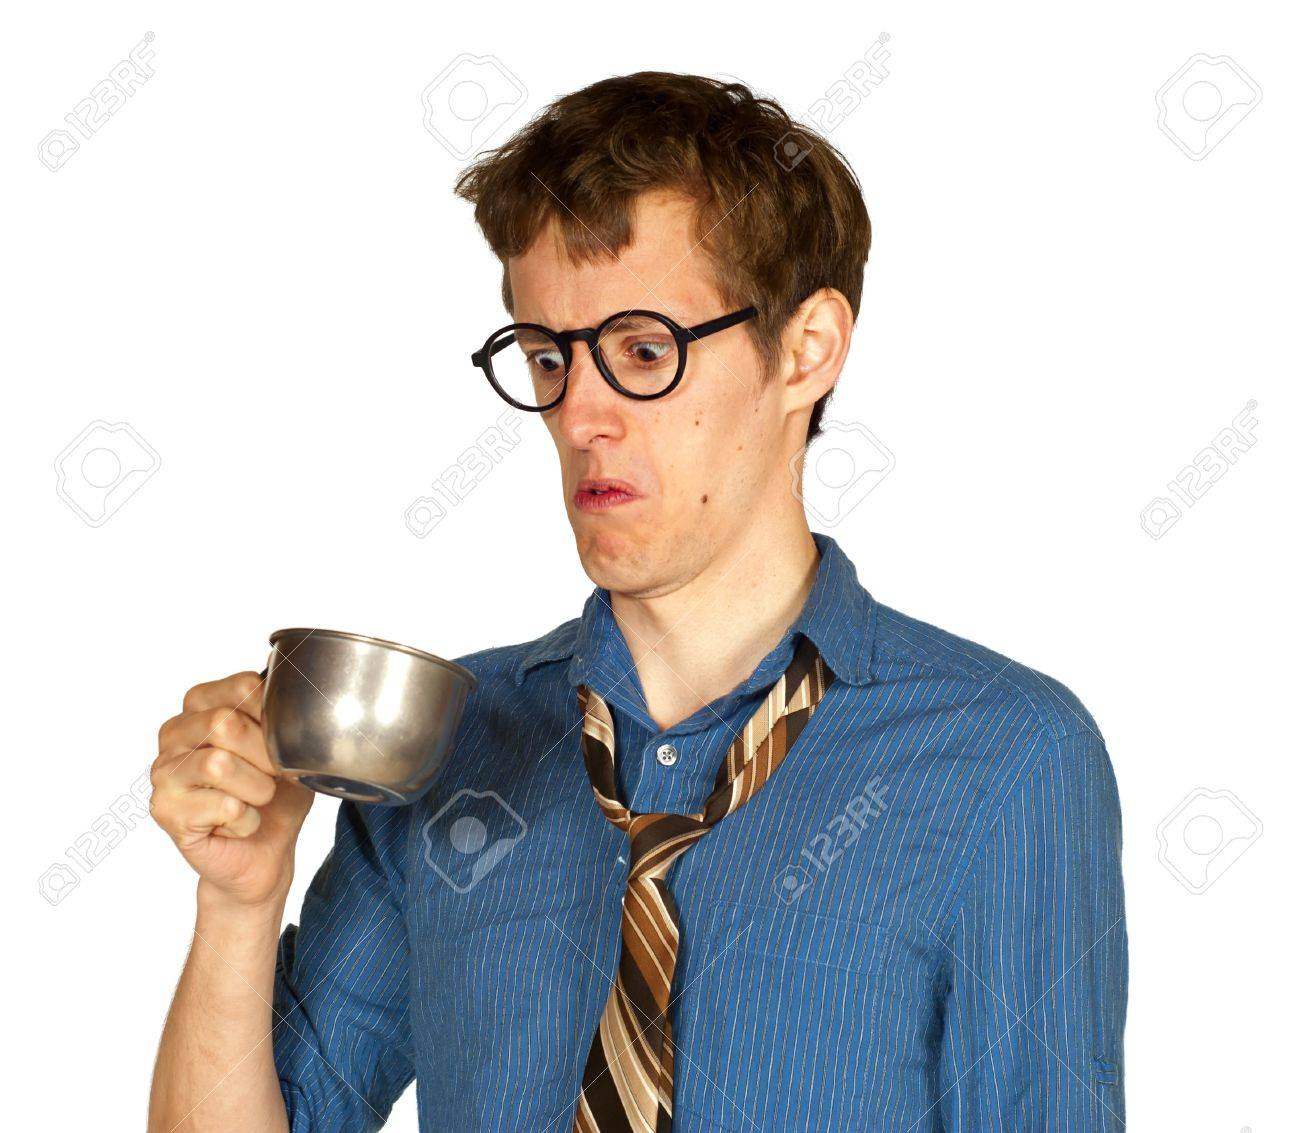 Man with glasses looking into metal cup, with look of distaste, isolated on white background Stock Photo - 14798375